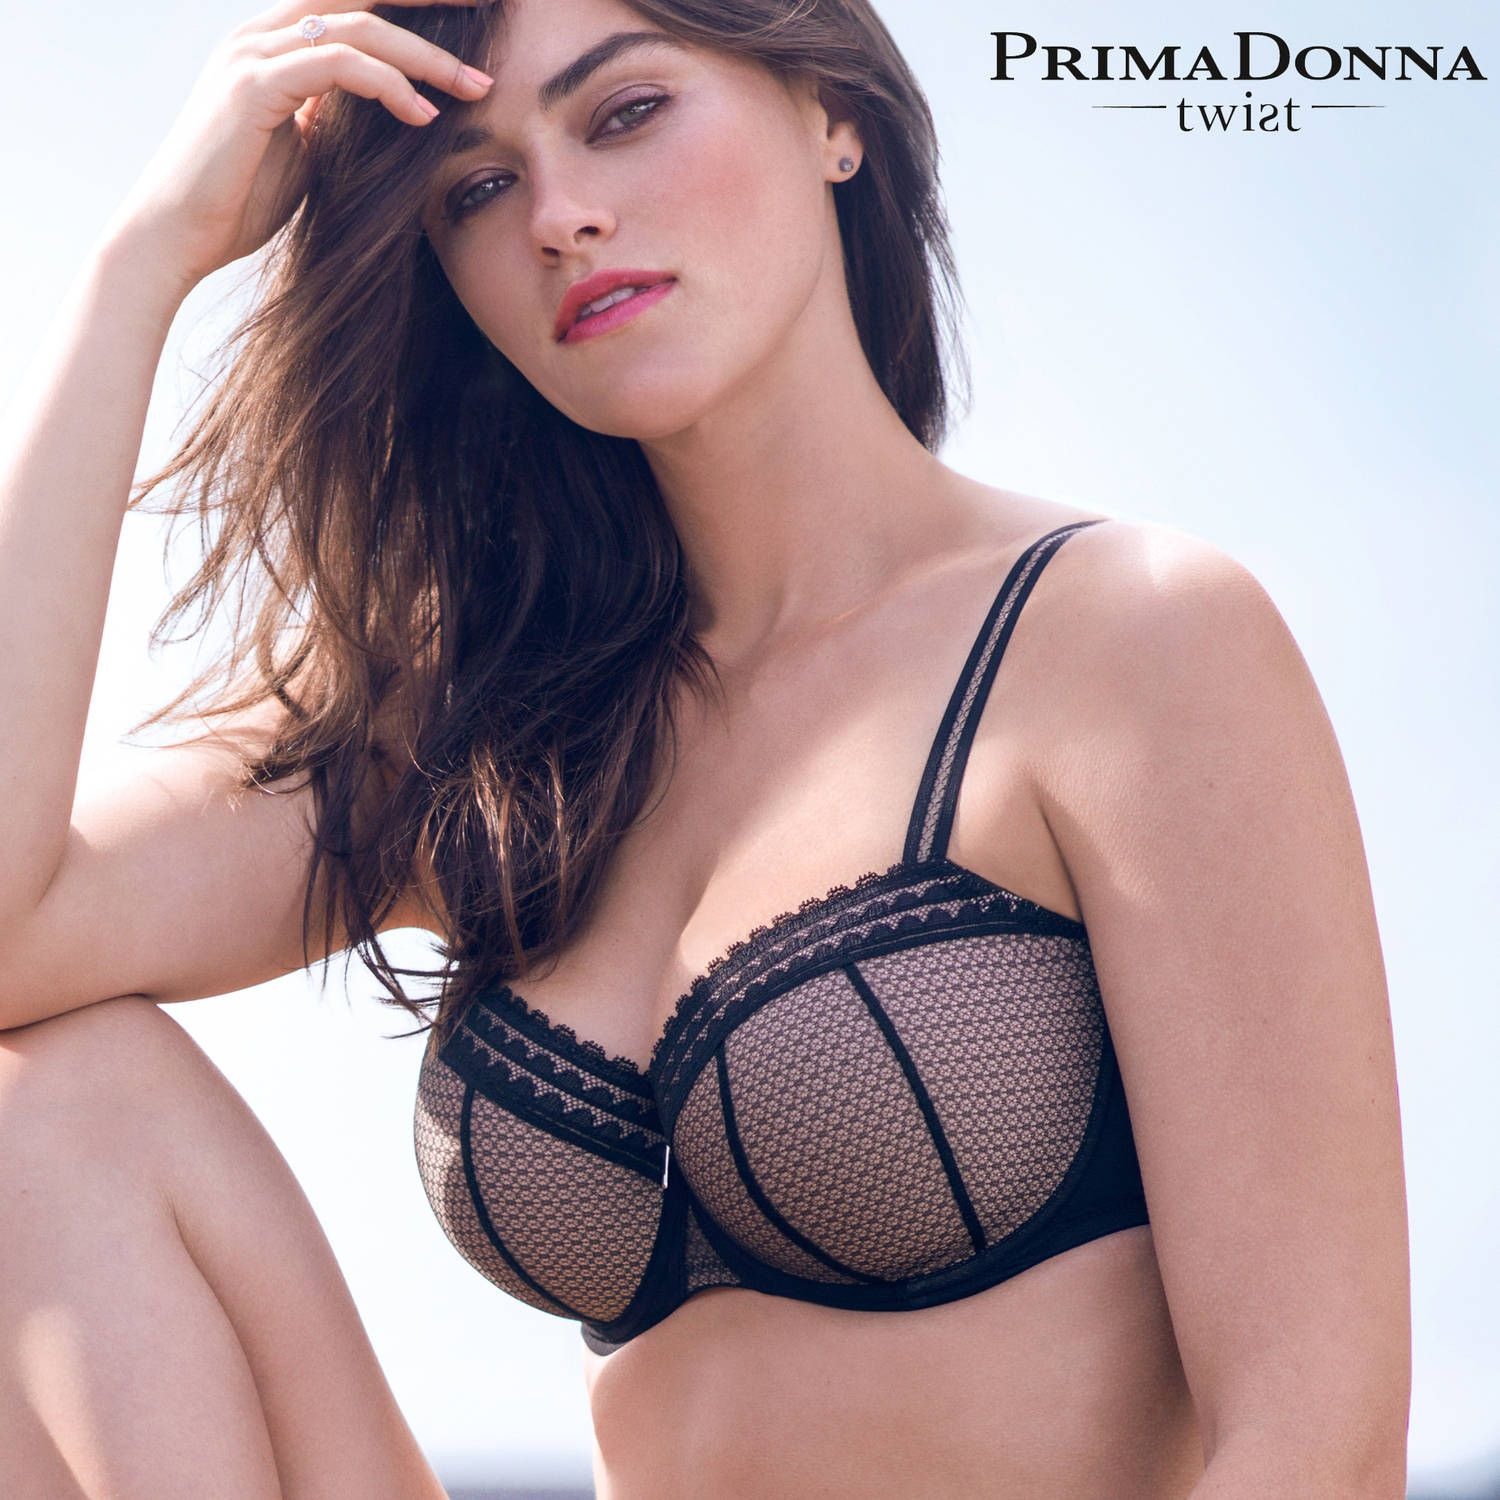 PRIMADONNA TWIST I Want You Soutien-gorge balconnet rembourré noir ... 1b4c3078dc5